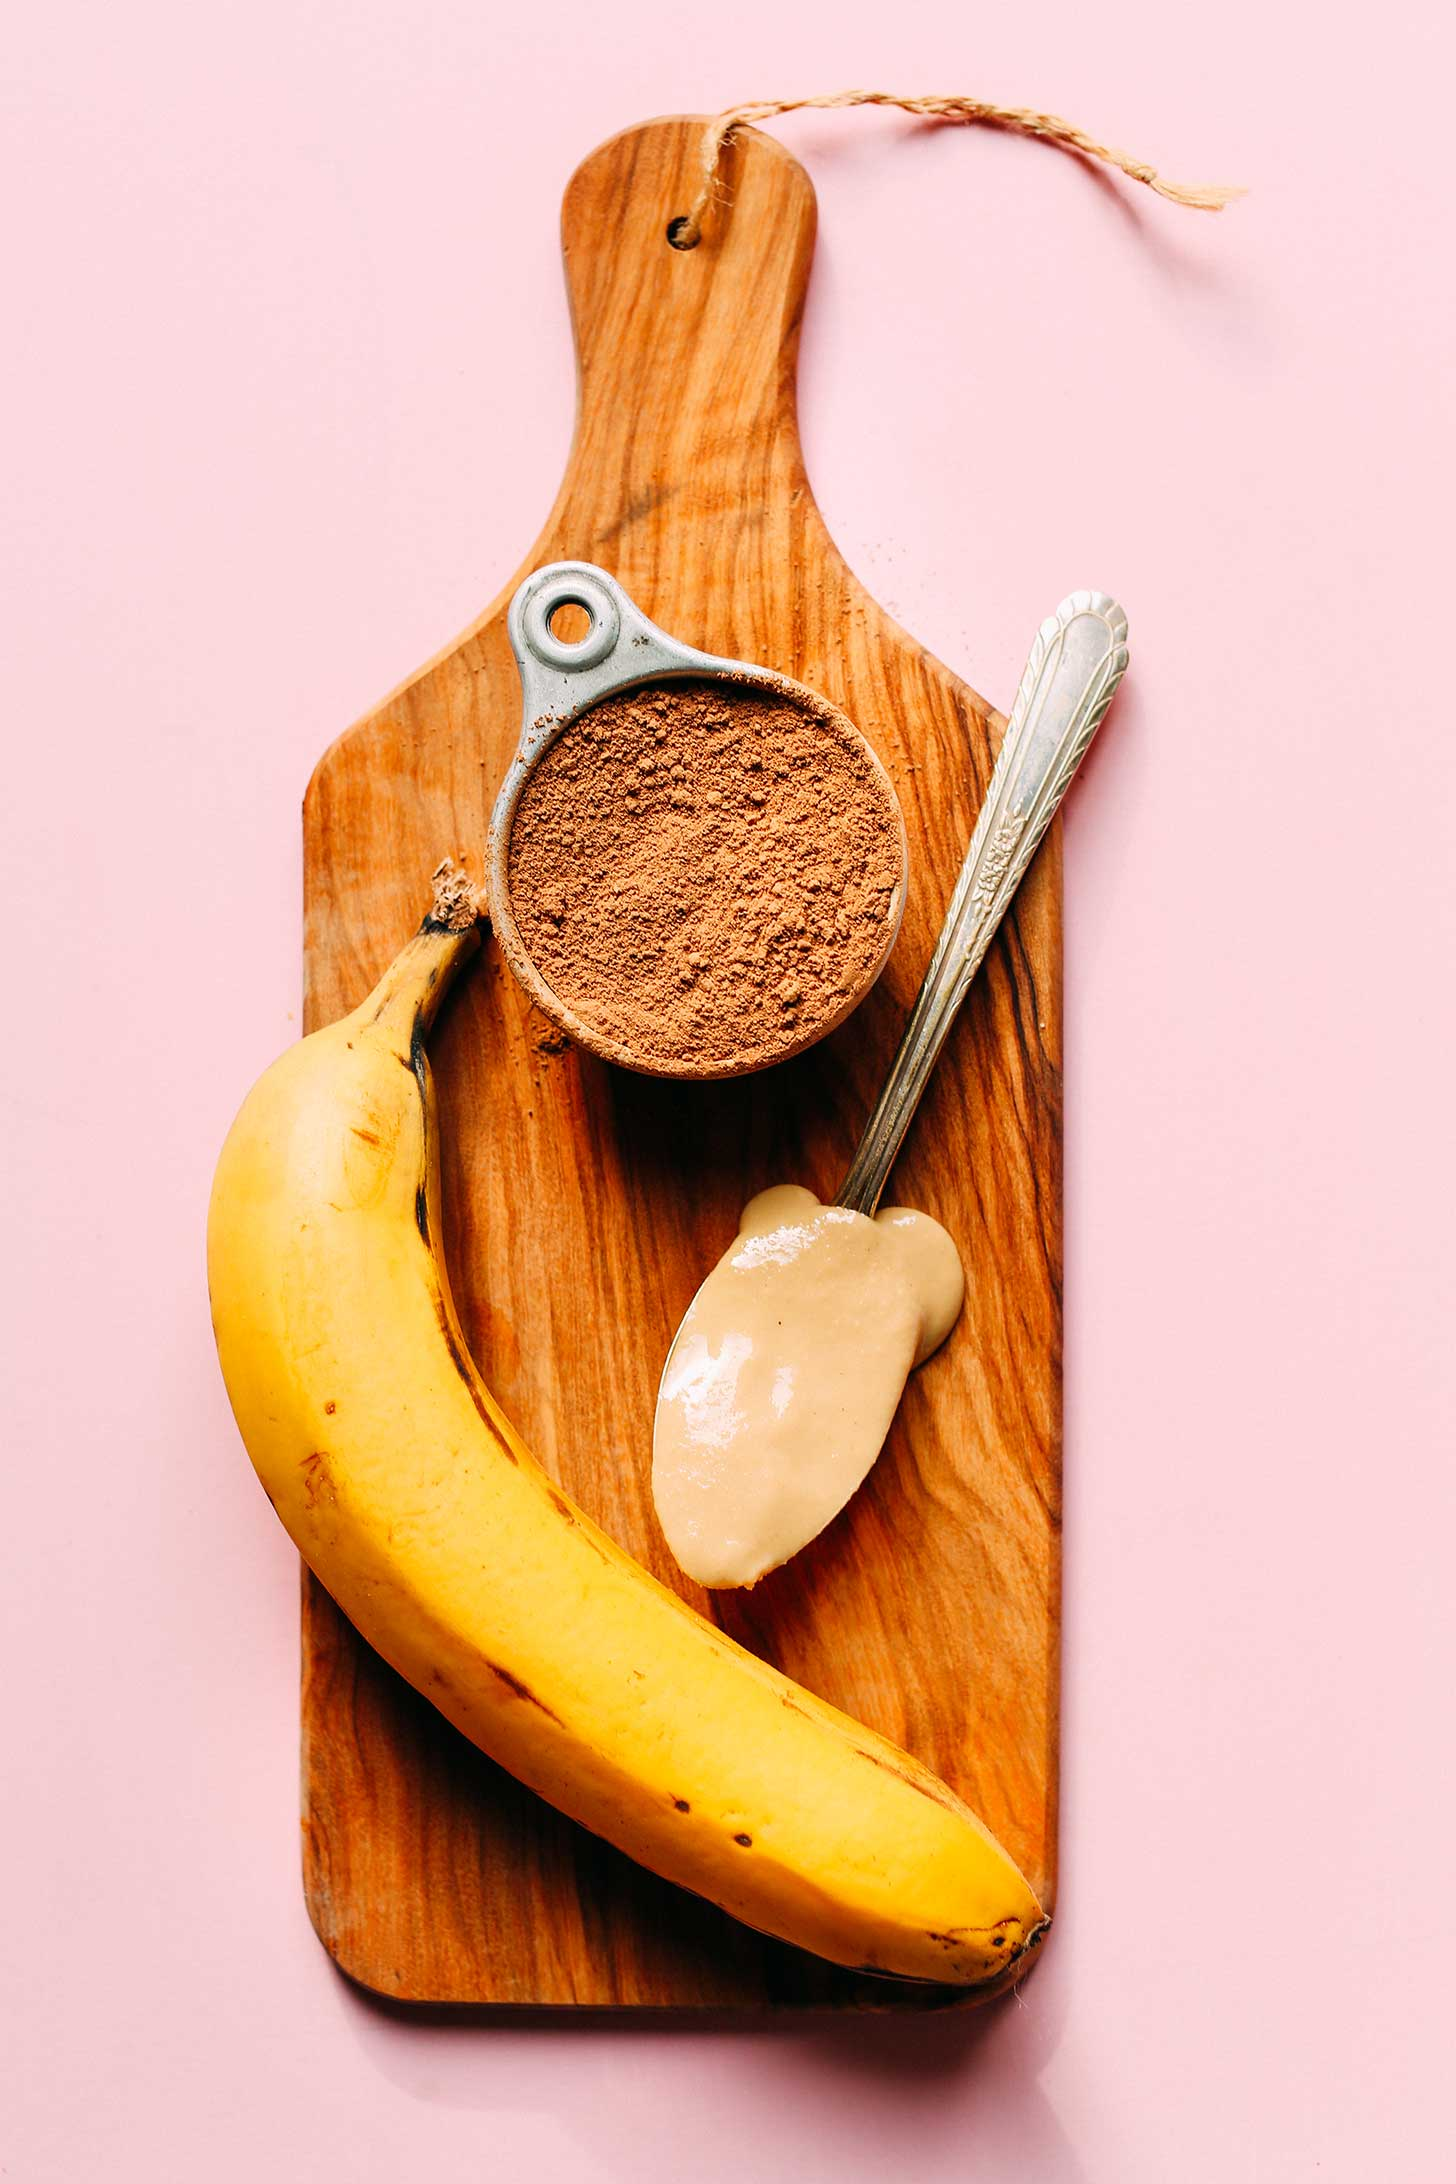 HEALTHY Chocolate Tahini Banana Soft Serve! 4 ingredients, naturally sweet, SO delicious! #vegan #softserve #banana #icecream #glutenfree #chocolate #tahini #minimalistbaker